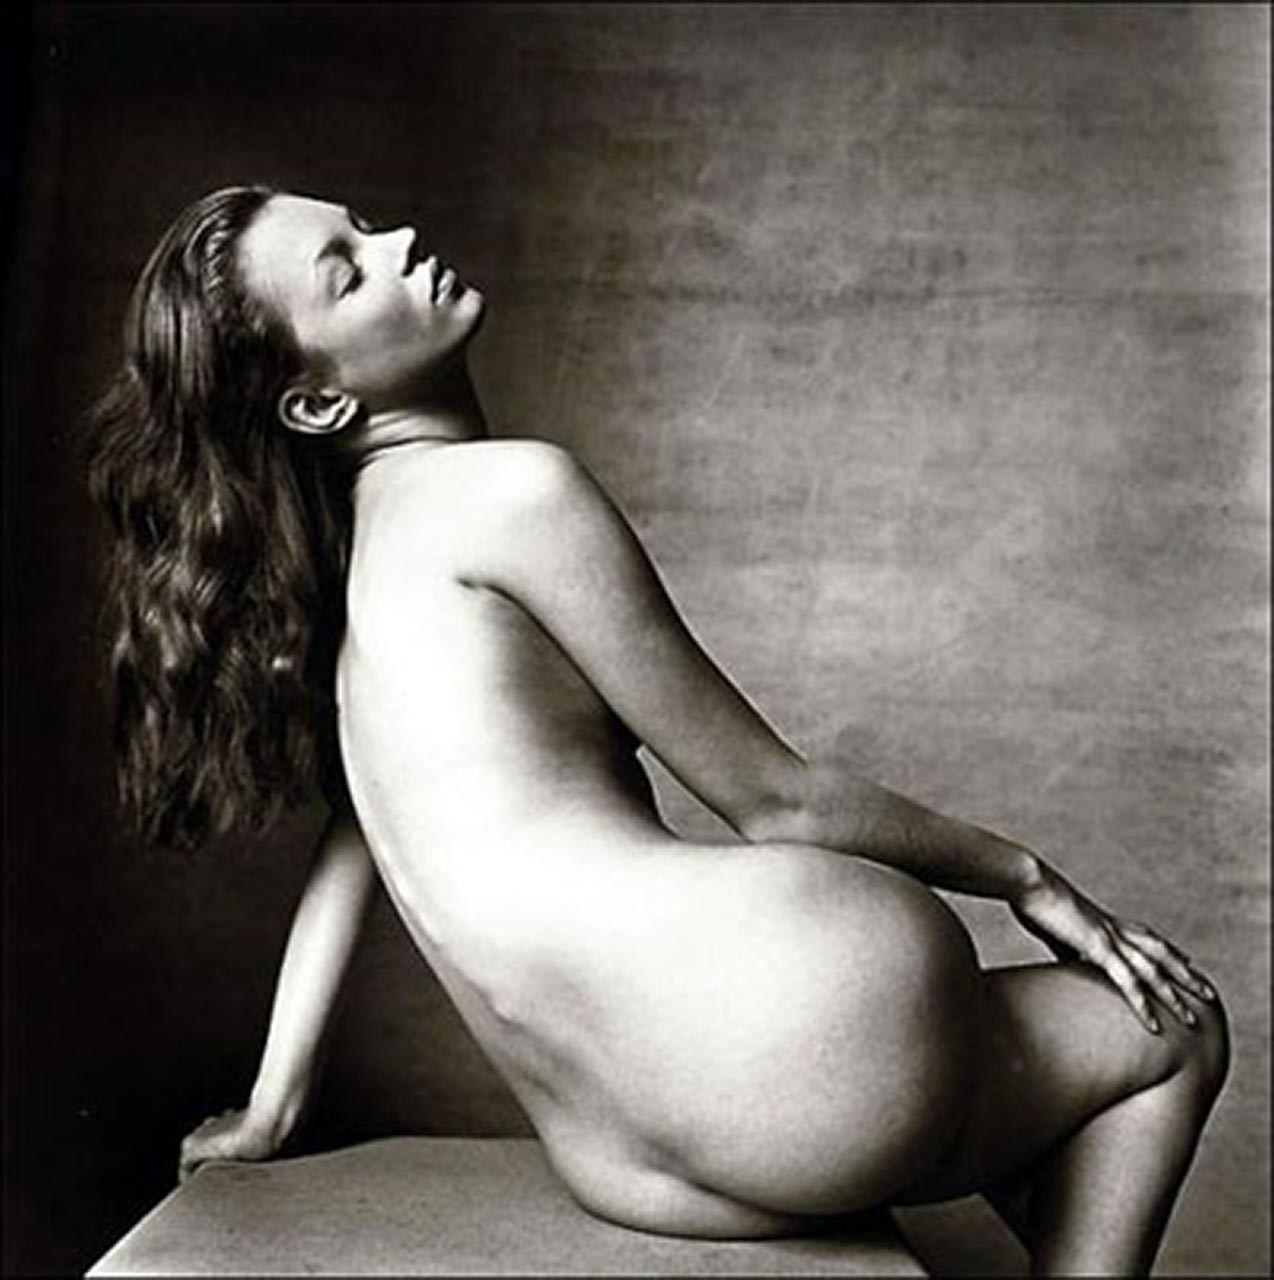 Apologise, kate moss full nude was